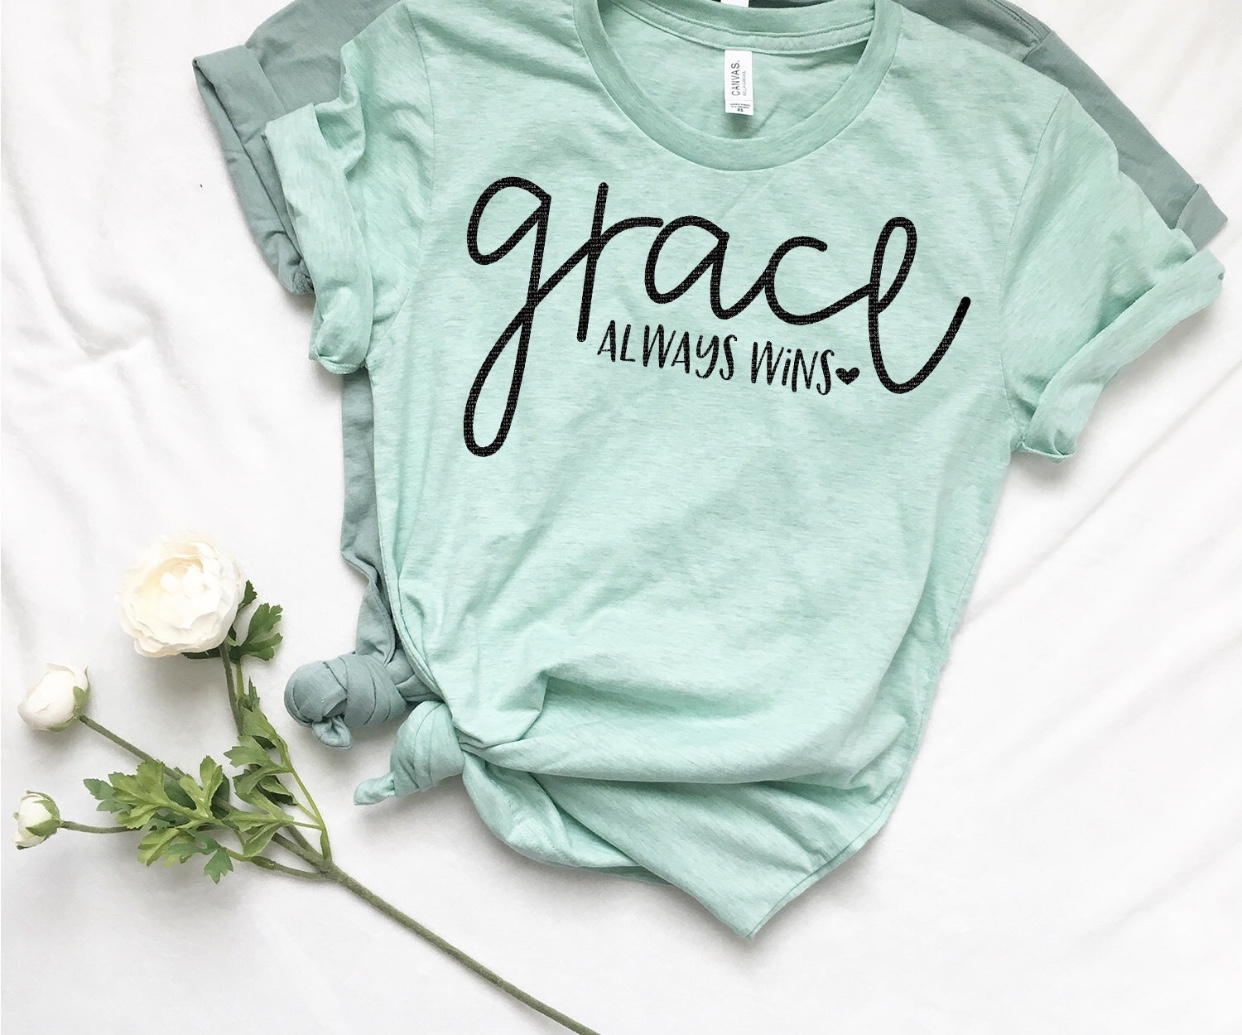 Grace ALWAYS wins tee